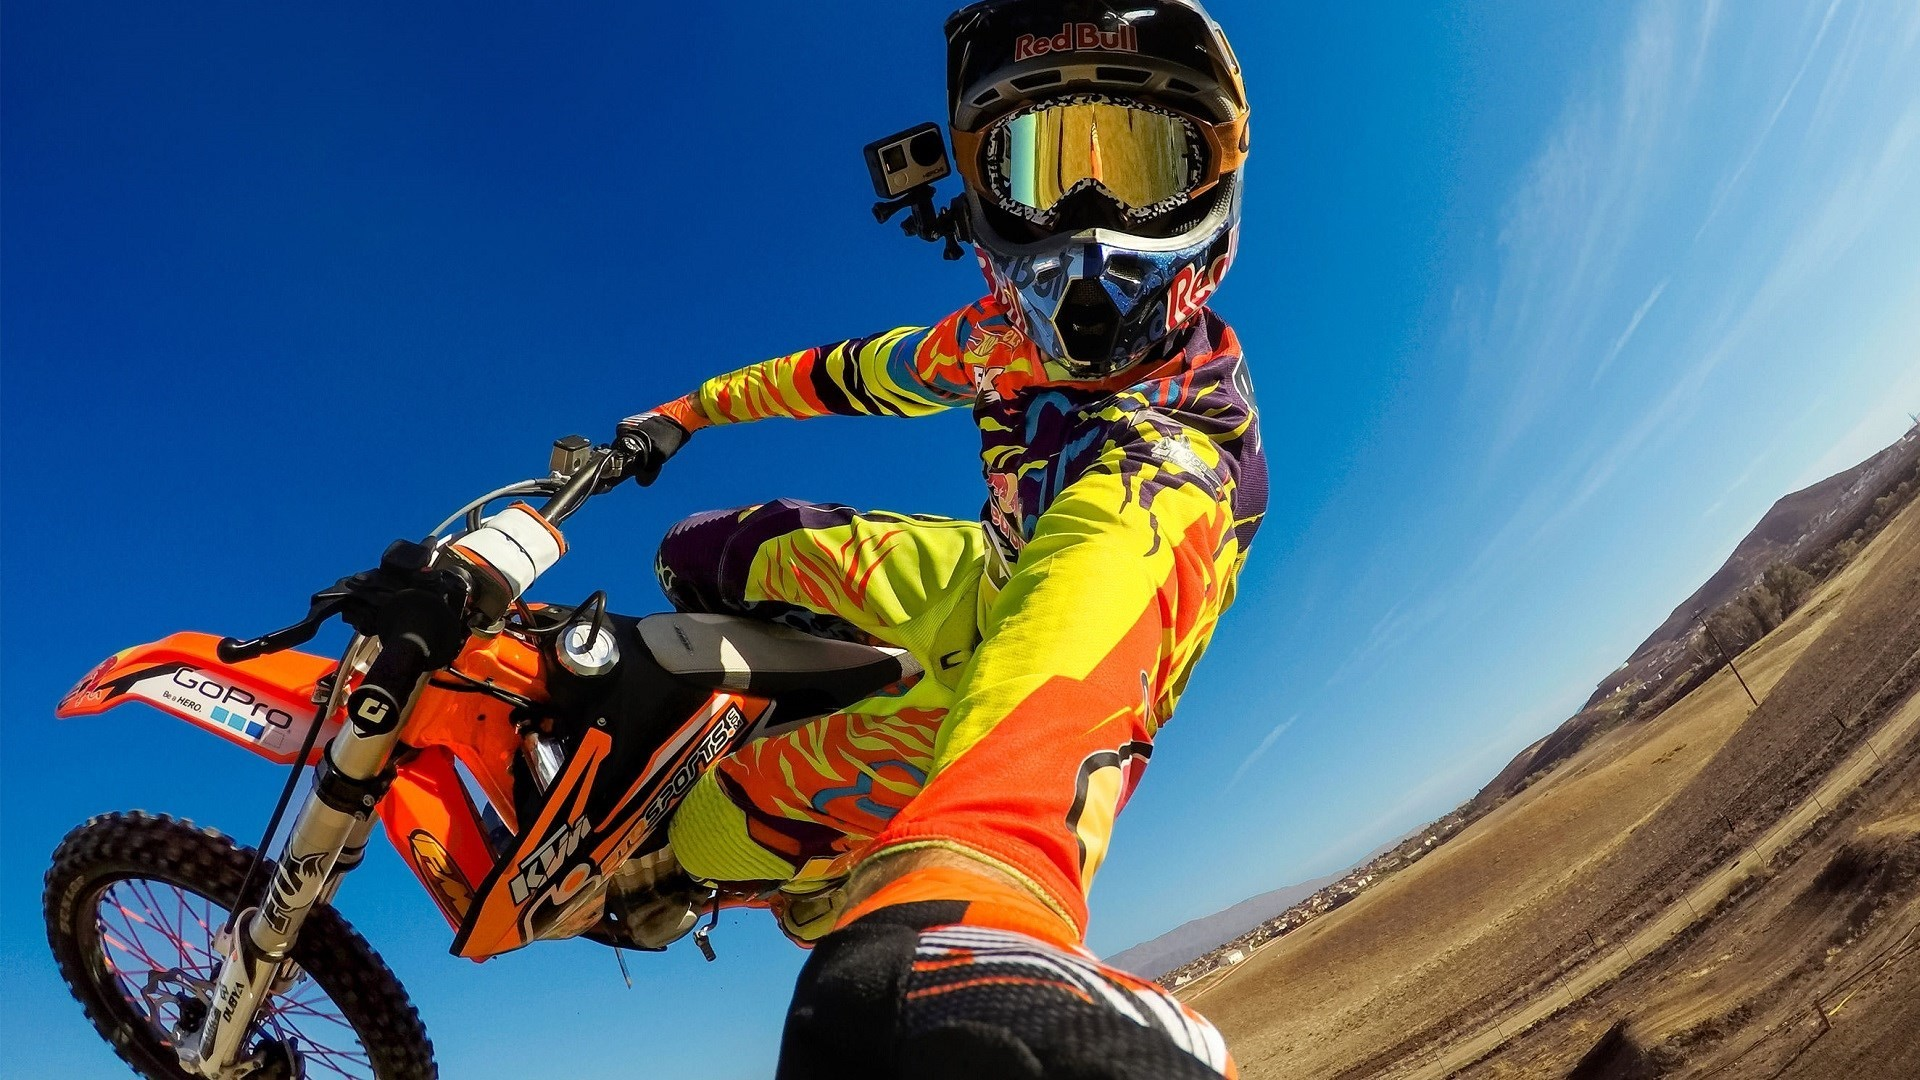 10 New Ktm Dirt Bike Wallpapers Full Hd 1080p For Pc: Wallpapers Motocross Ktm (68+ Background Pictures